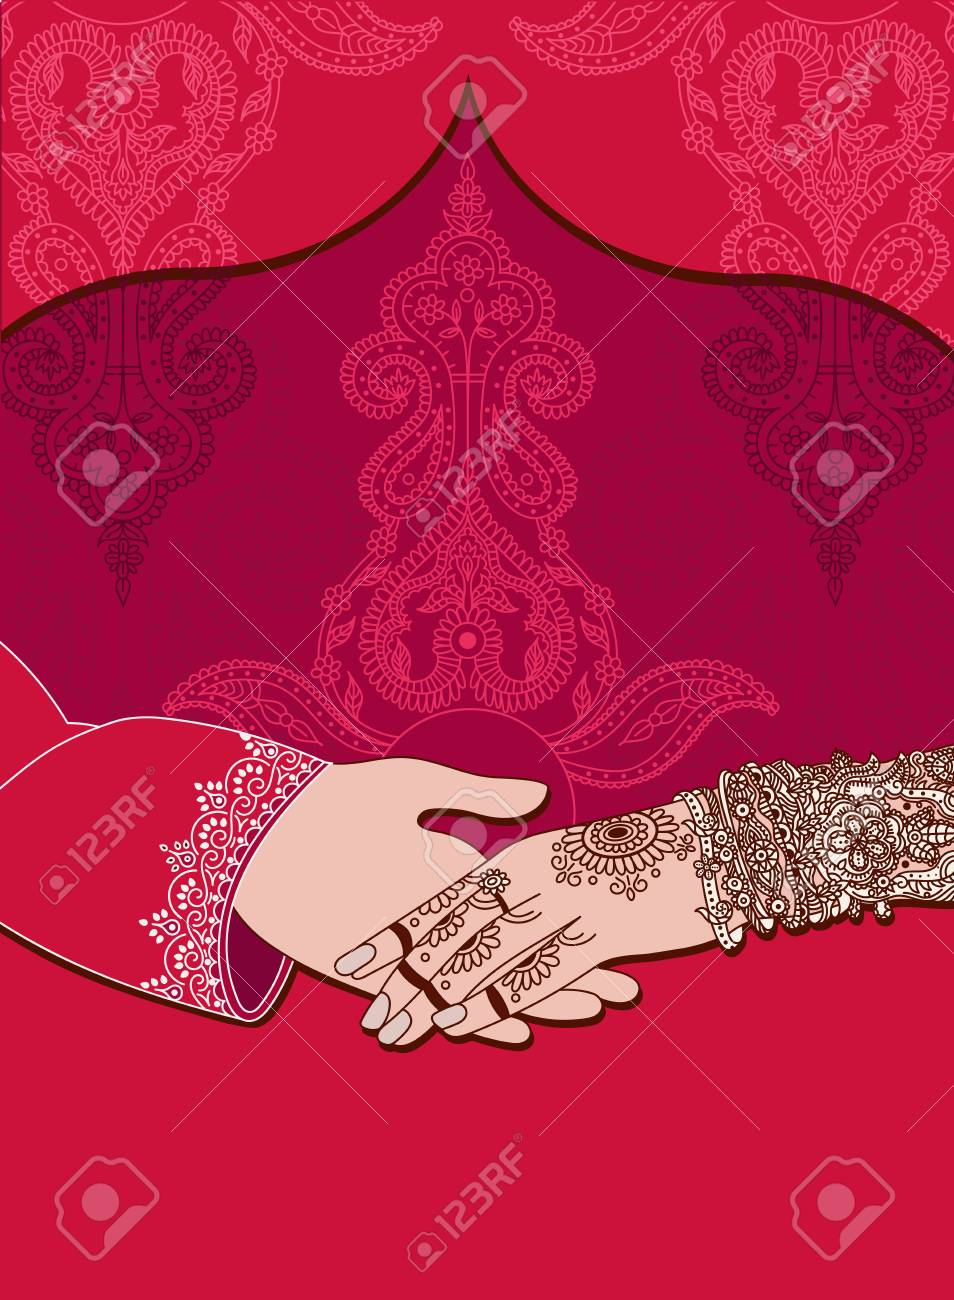 Wedding Indian Invitation Card On Red Background. India Marriage ...